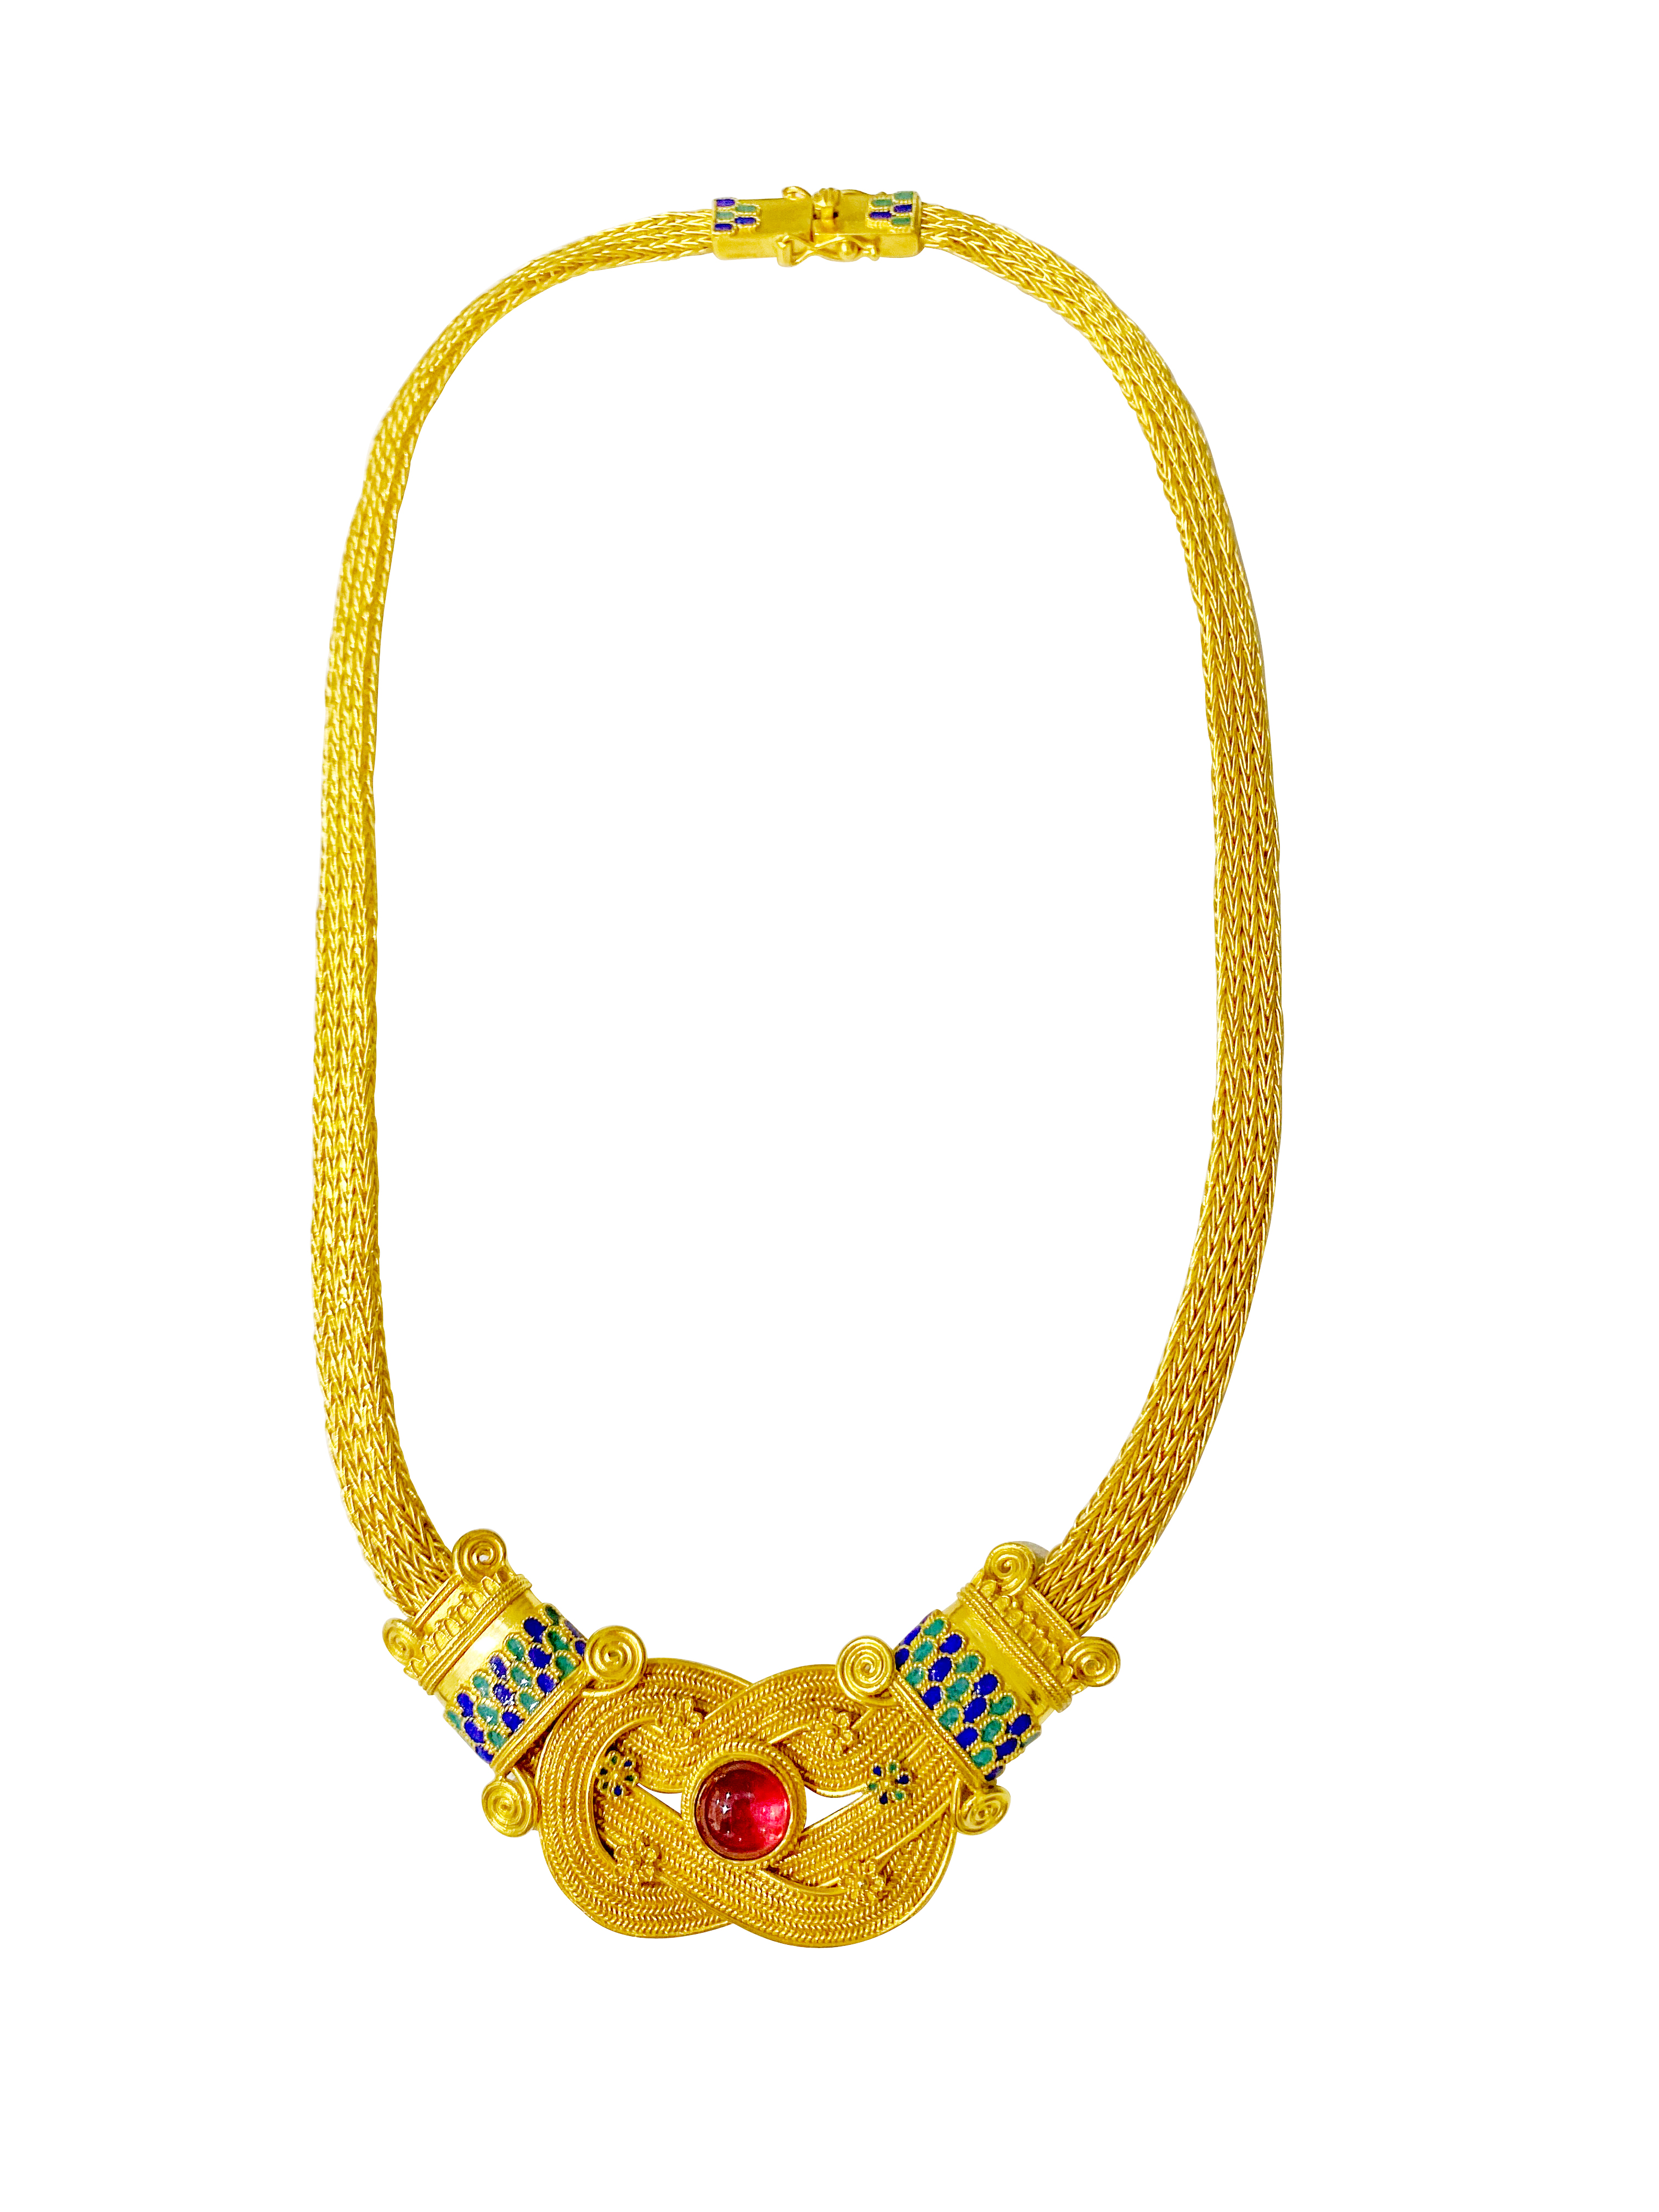 A 22K gold Ancient Greek Mycenaean style necklace with royal blue and green enamel with 4ct garnet